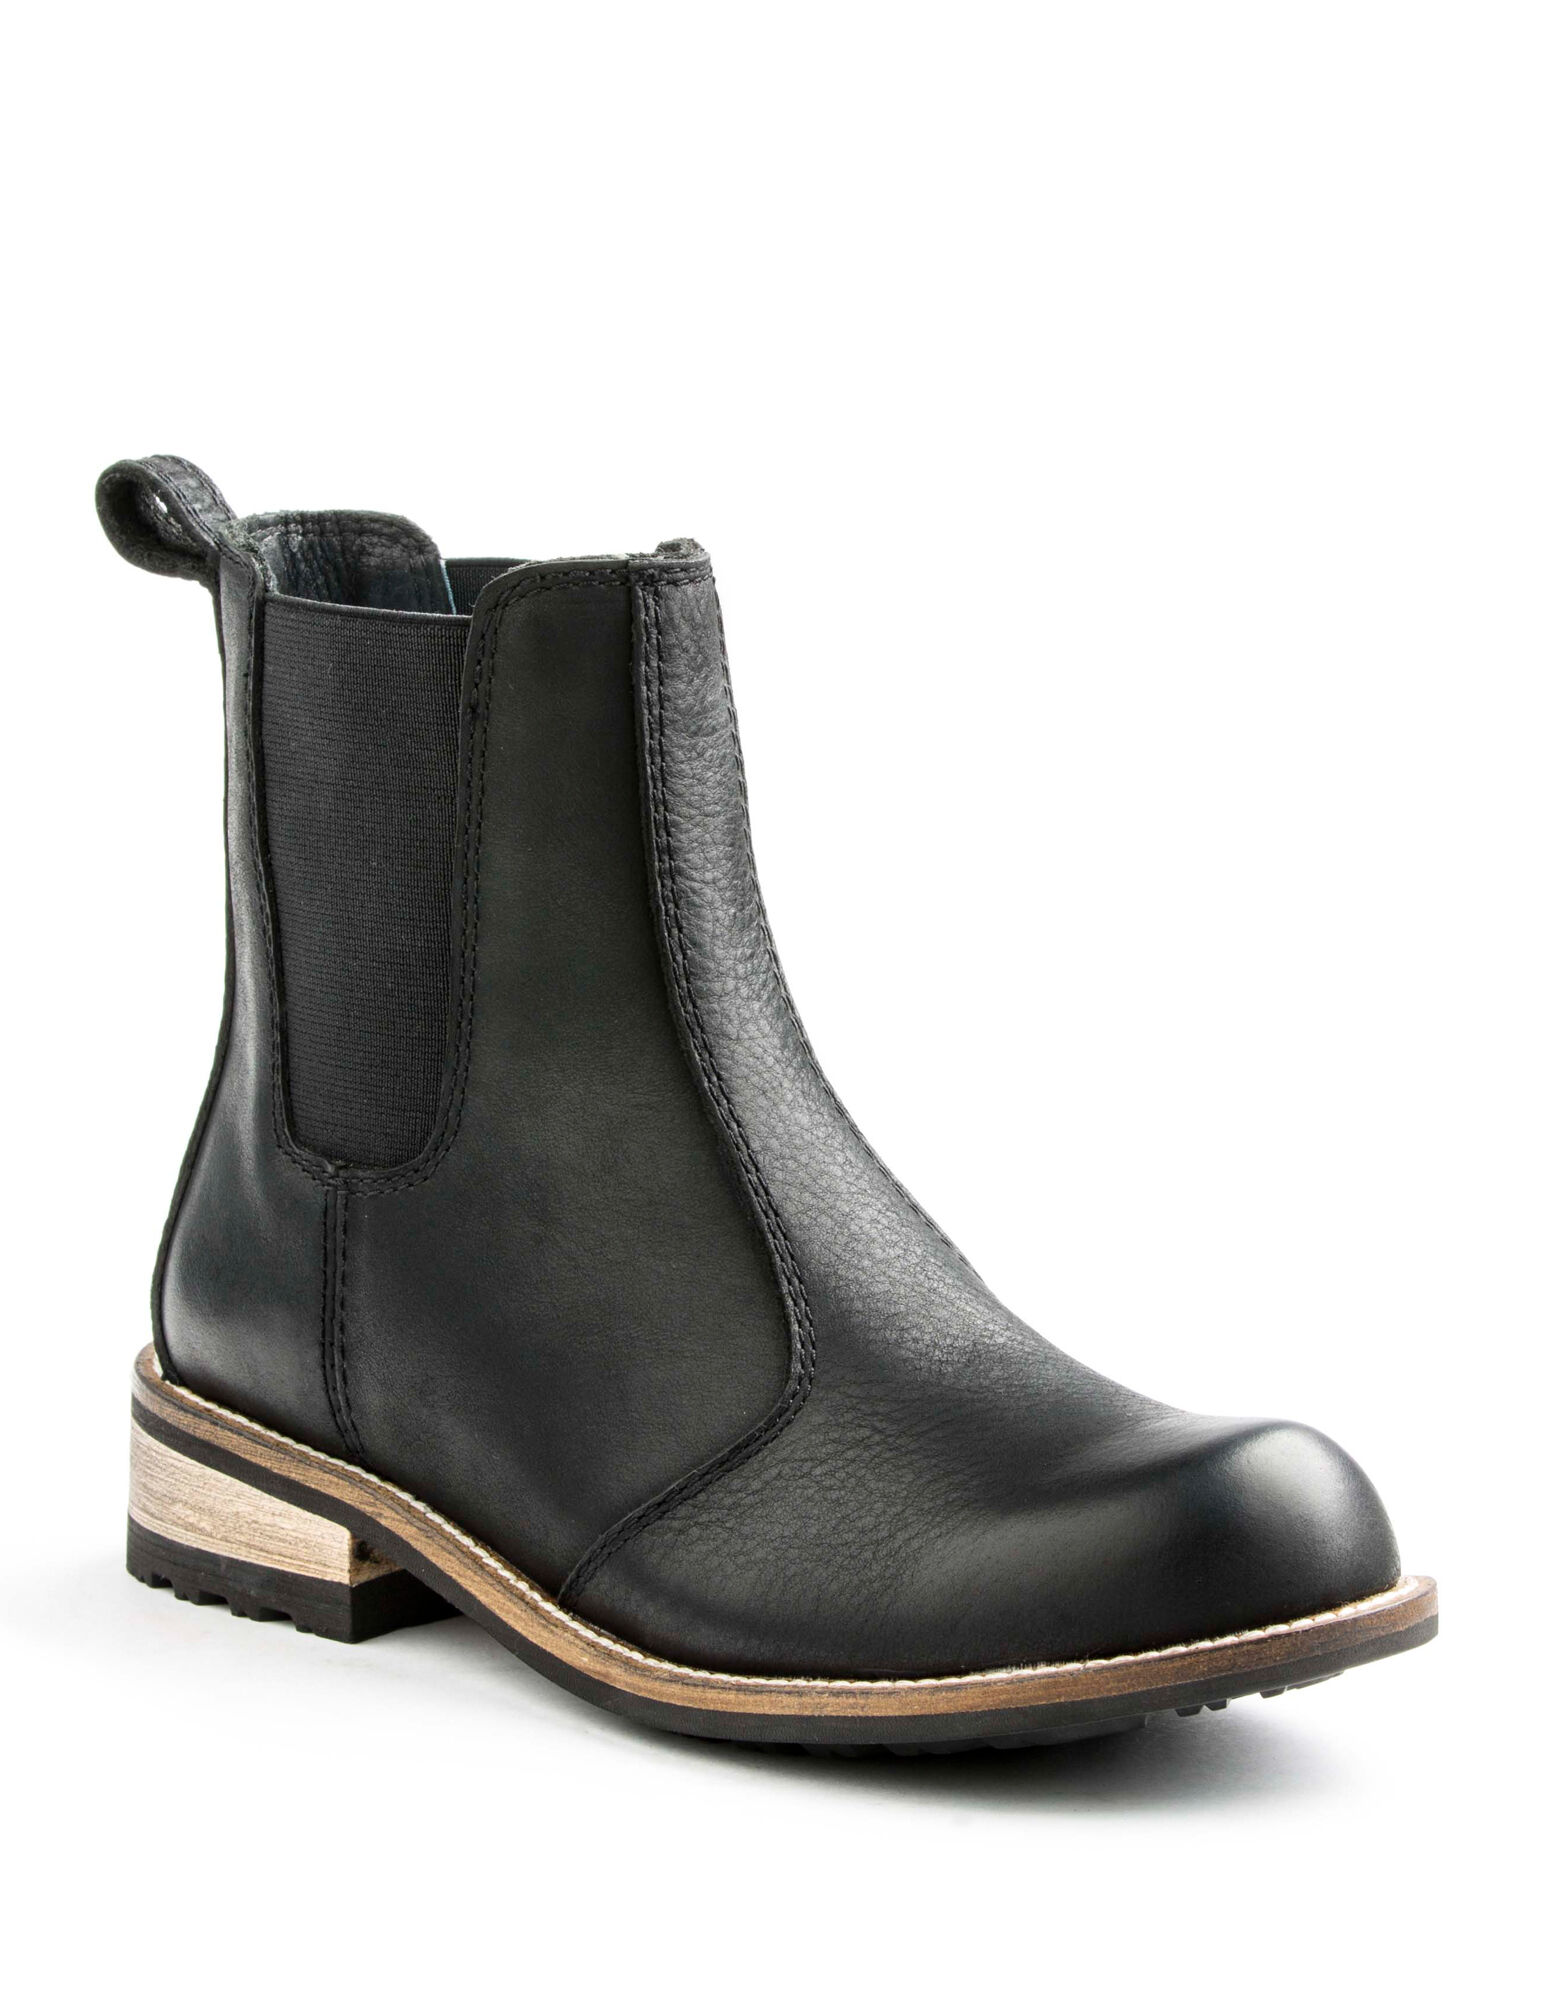 Model 25 Elegant Kodiak Boots Women | Sobatapk.com